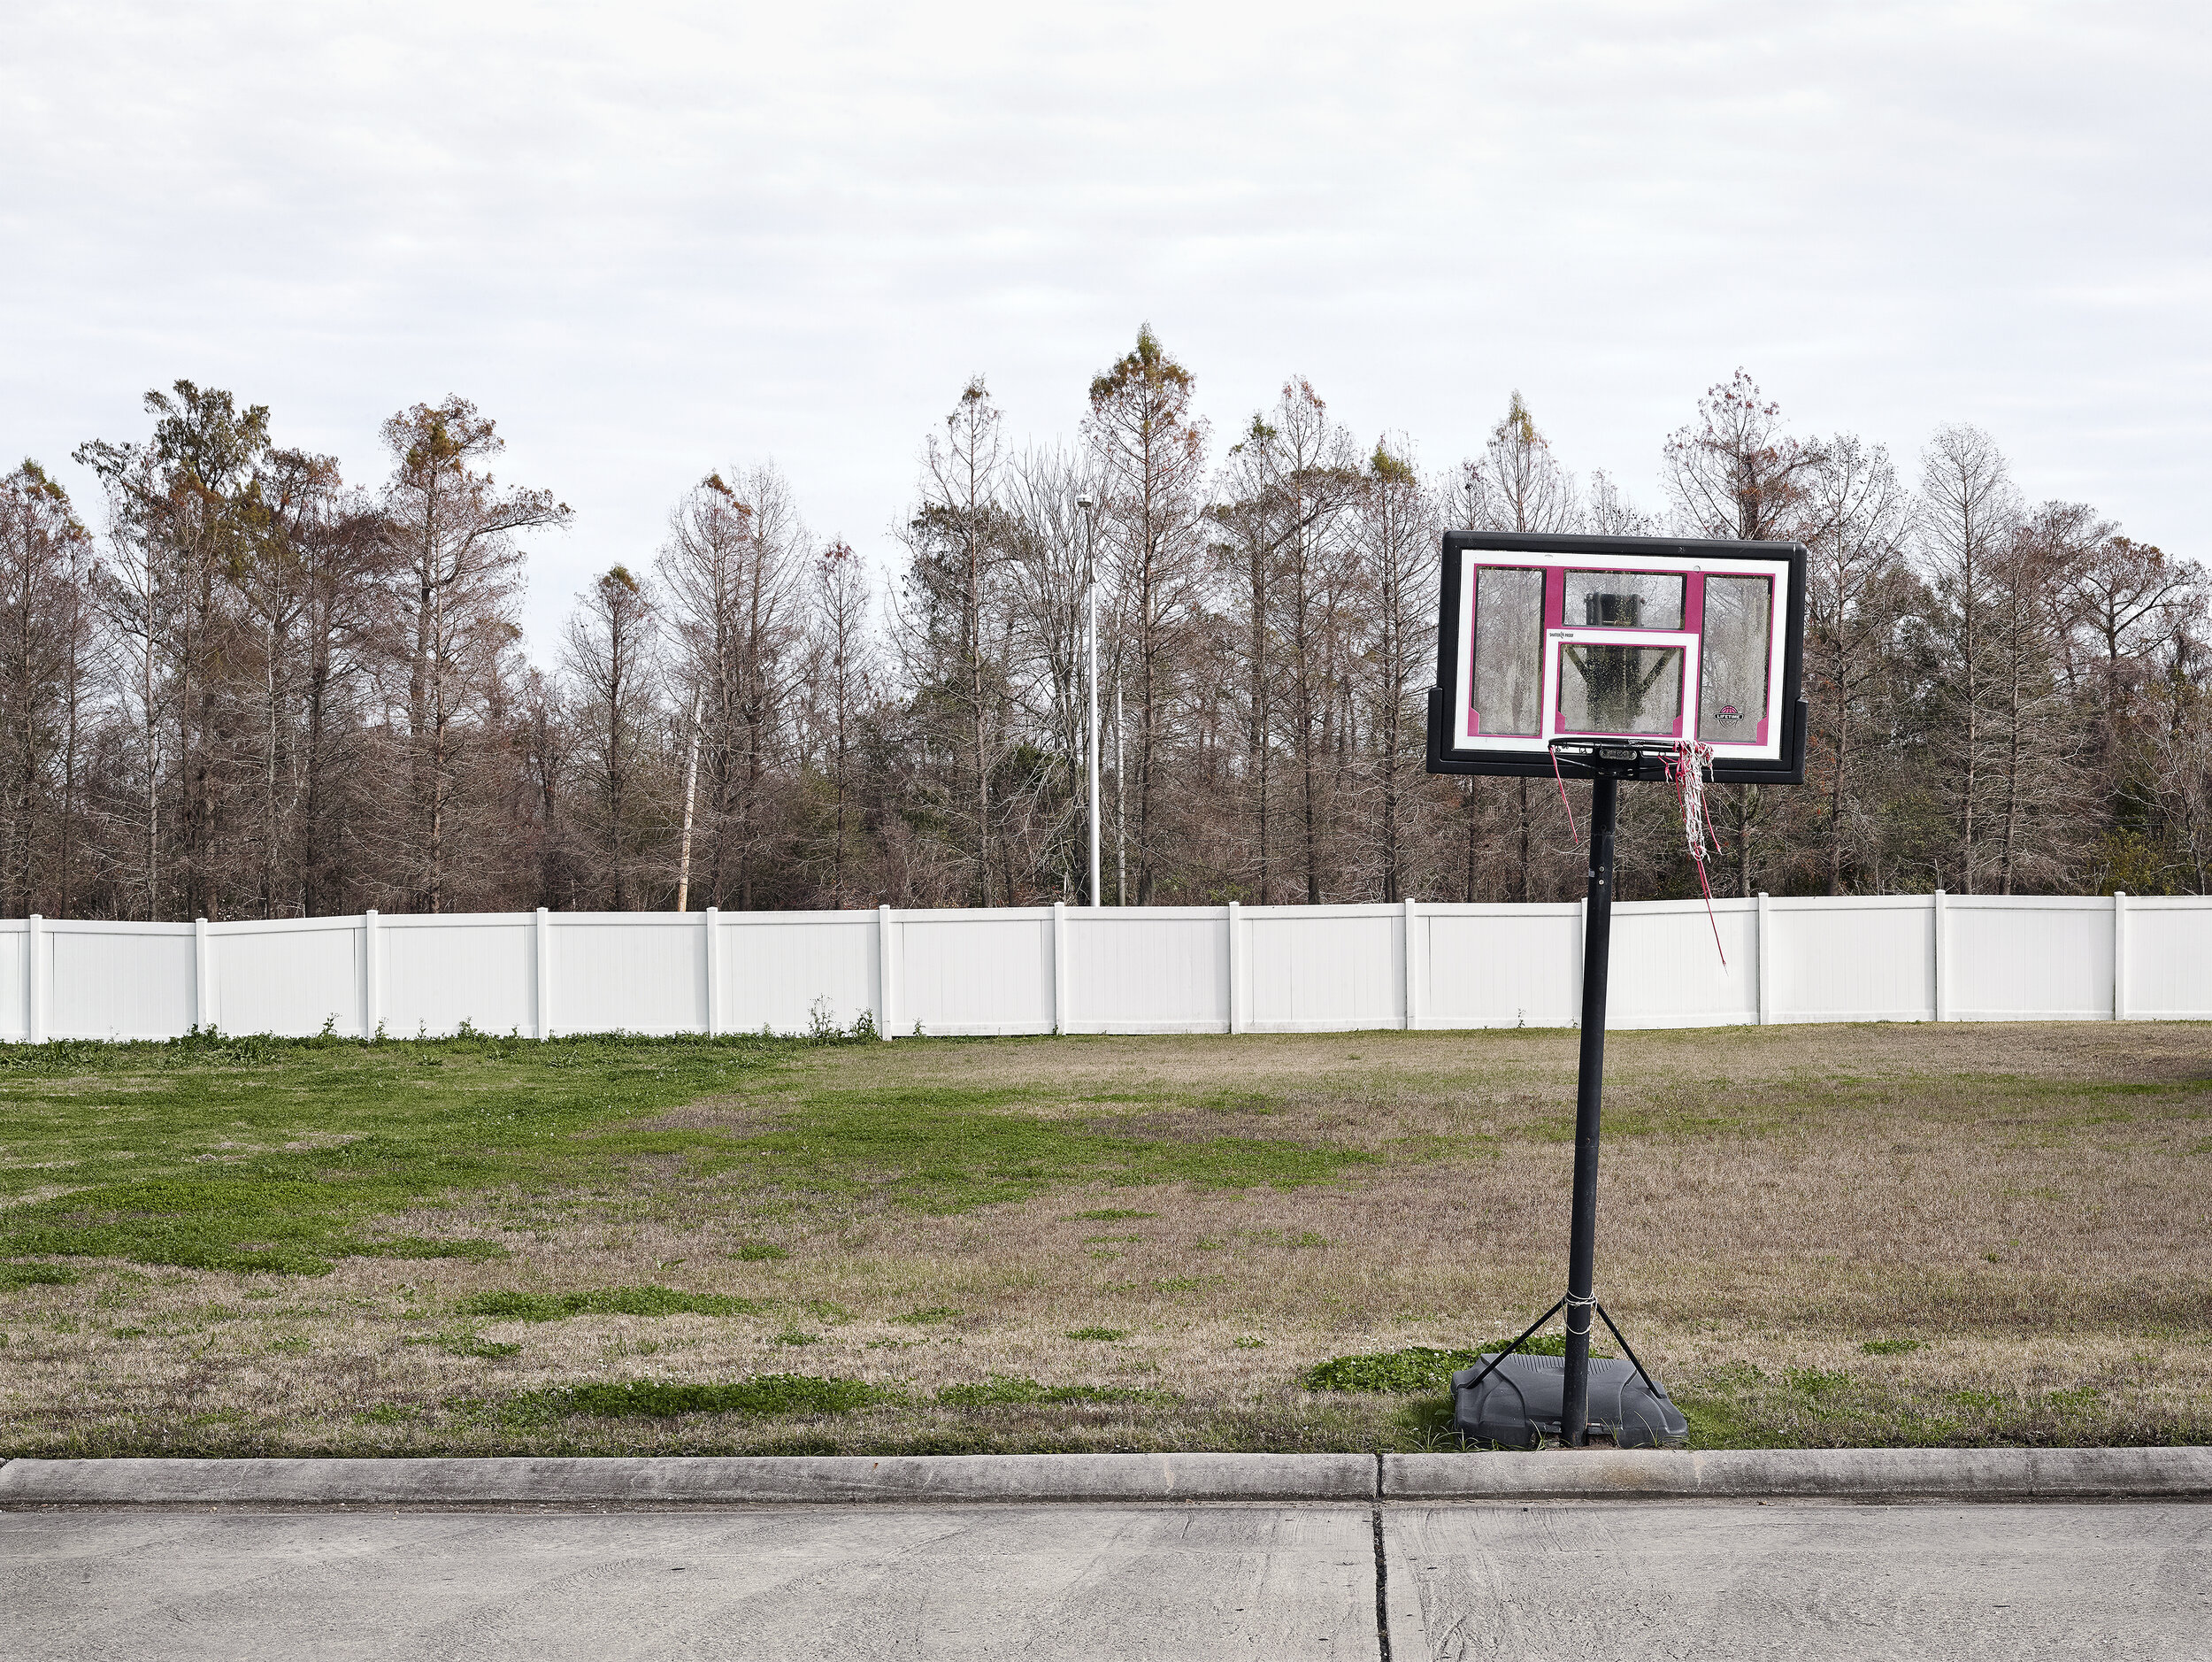 Basketball Net and Wall - Archival Giclée Print on Hahnemühle Photo RagPrint: 127 x 98.4 cmEdition of 8 + 2AP